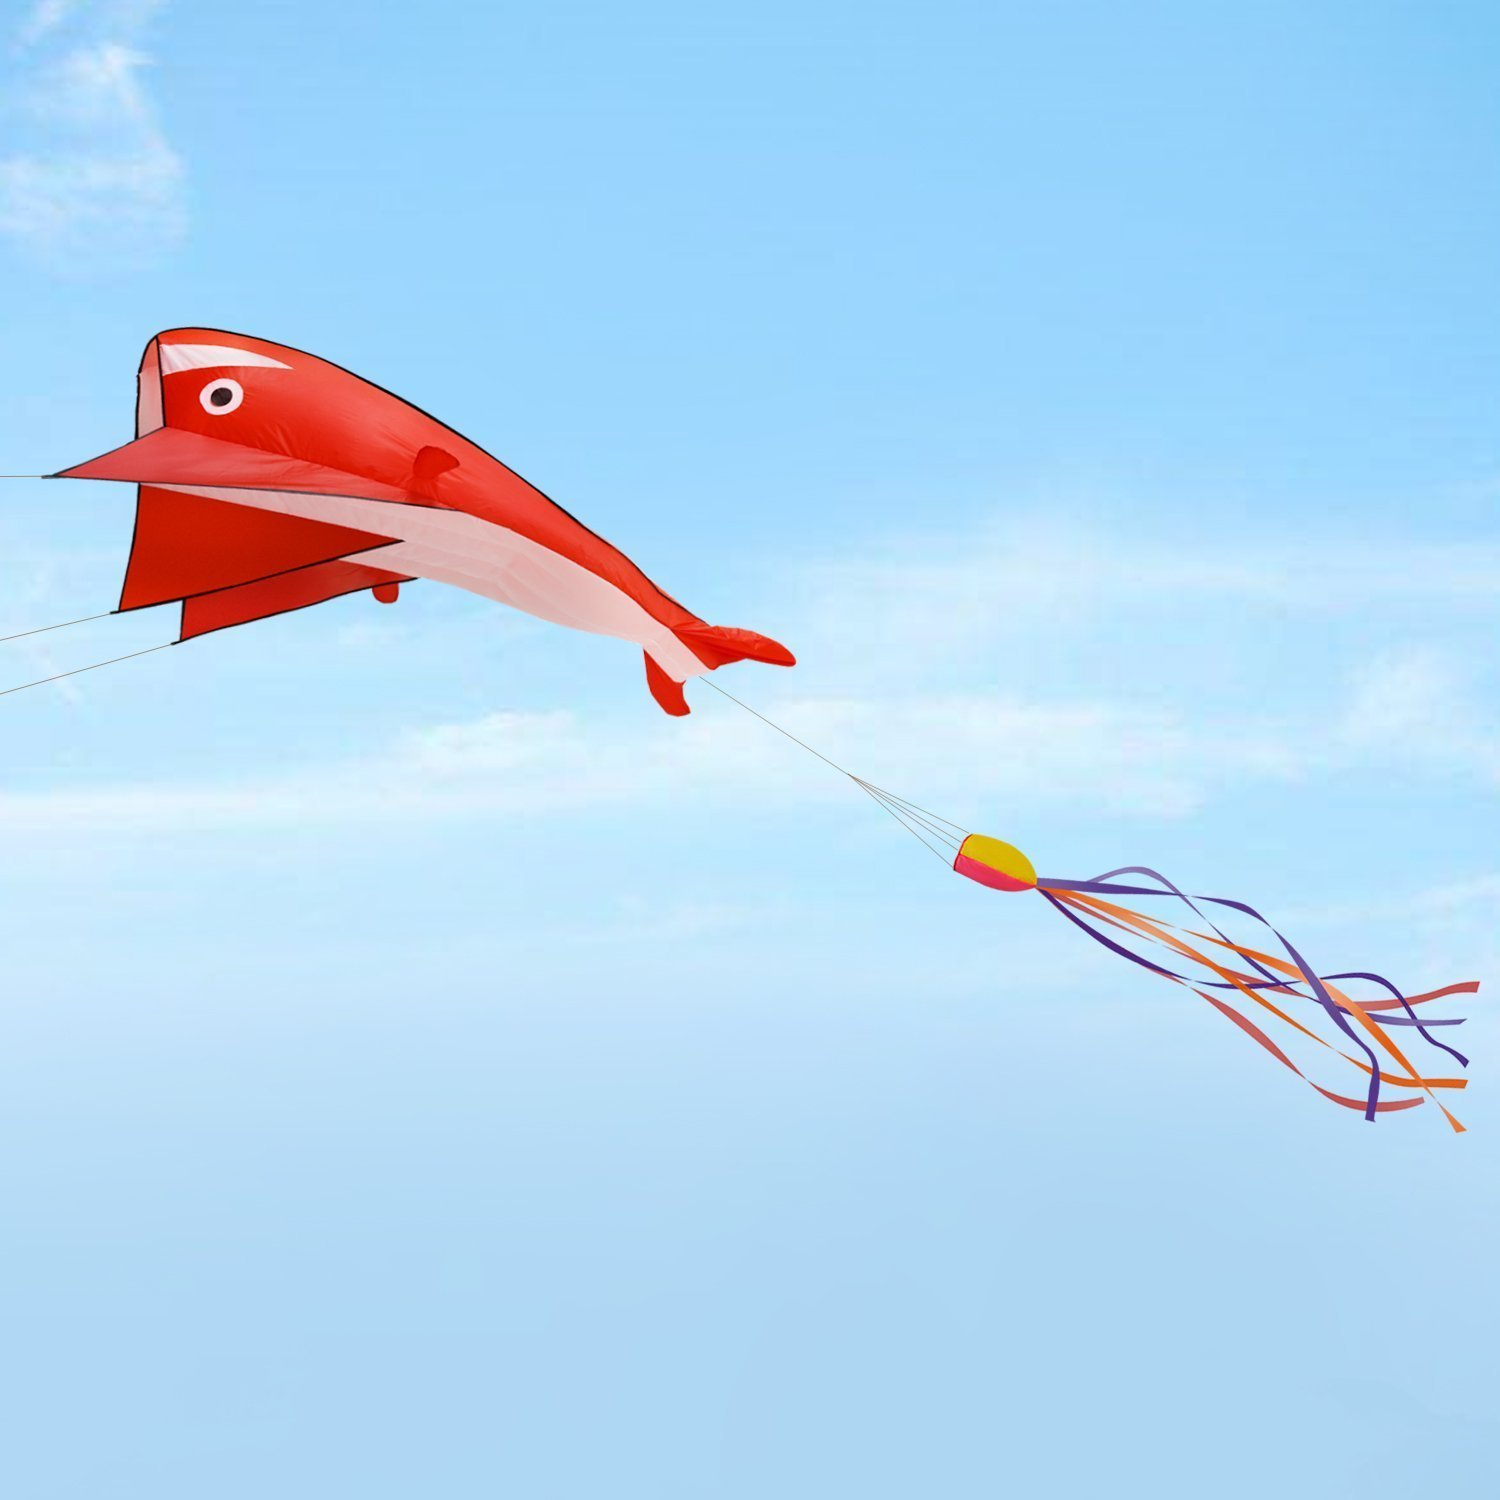 Fixm Huge 3D Dolphin Kite for Kids and Adults, 3D Frameless Soft Parafoil Animal Beach Kites with Handle & String, 78.74 x 28.74 Inch - One Of The Best Outdoor Activity Game Toys